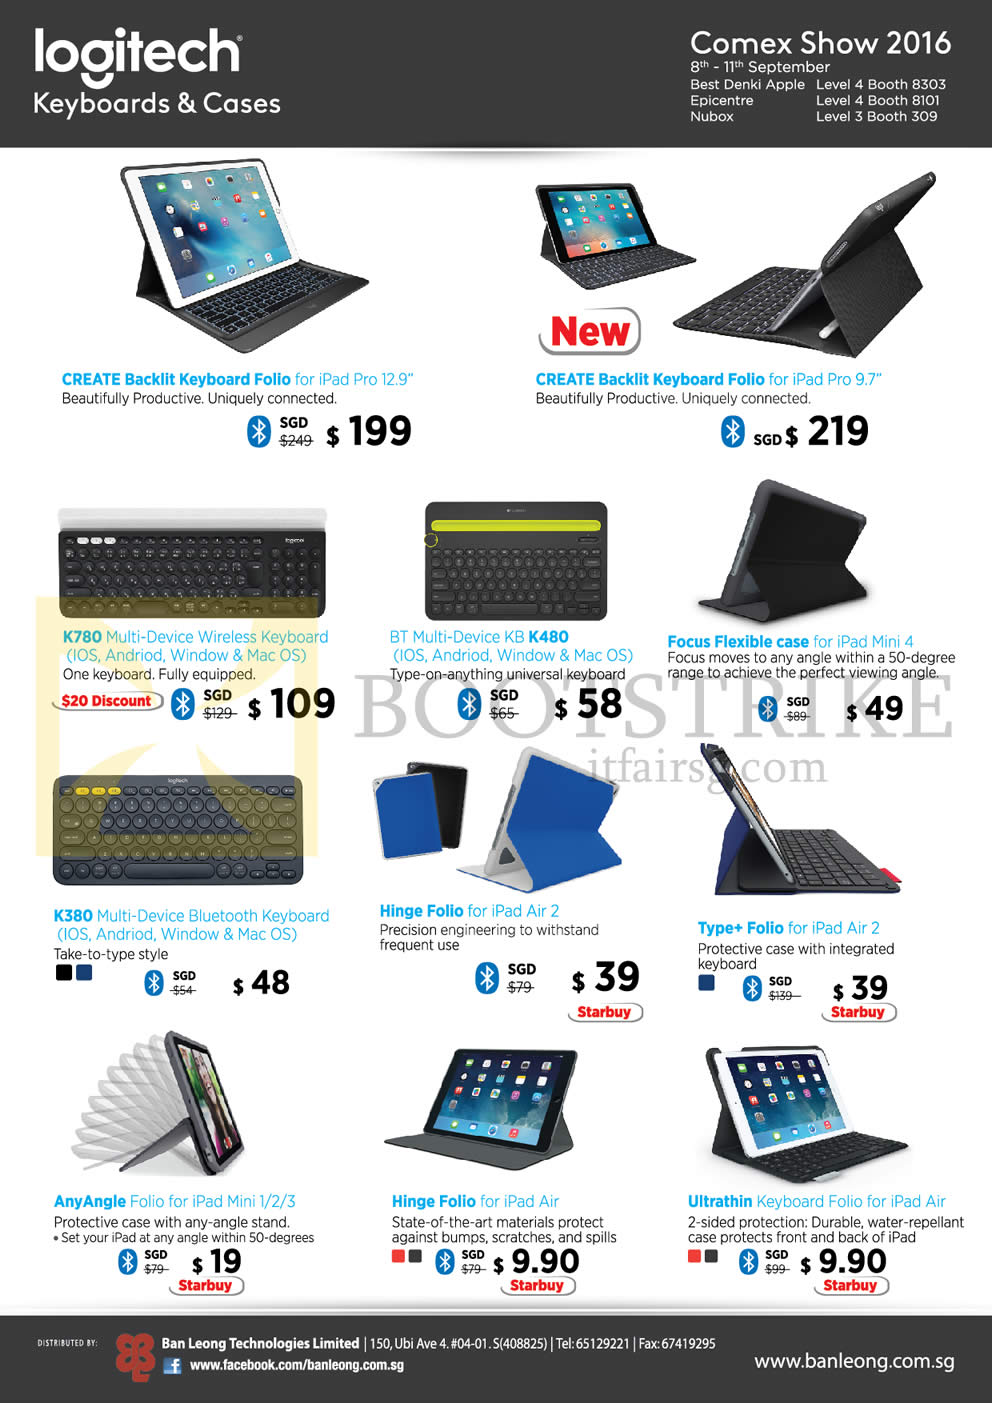 COMEX 2016 price list image brochure of Logitech Keyboards, Cases, Create Backlit Keyboard Folio, K780, K480, Focus Flexible Case, K380, Hinge Folio, Type Plus Folio, Any Angle, Hinge Folio, Ultrathin